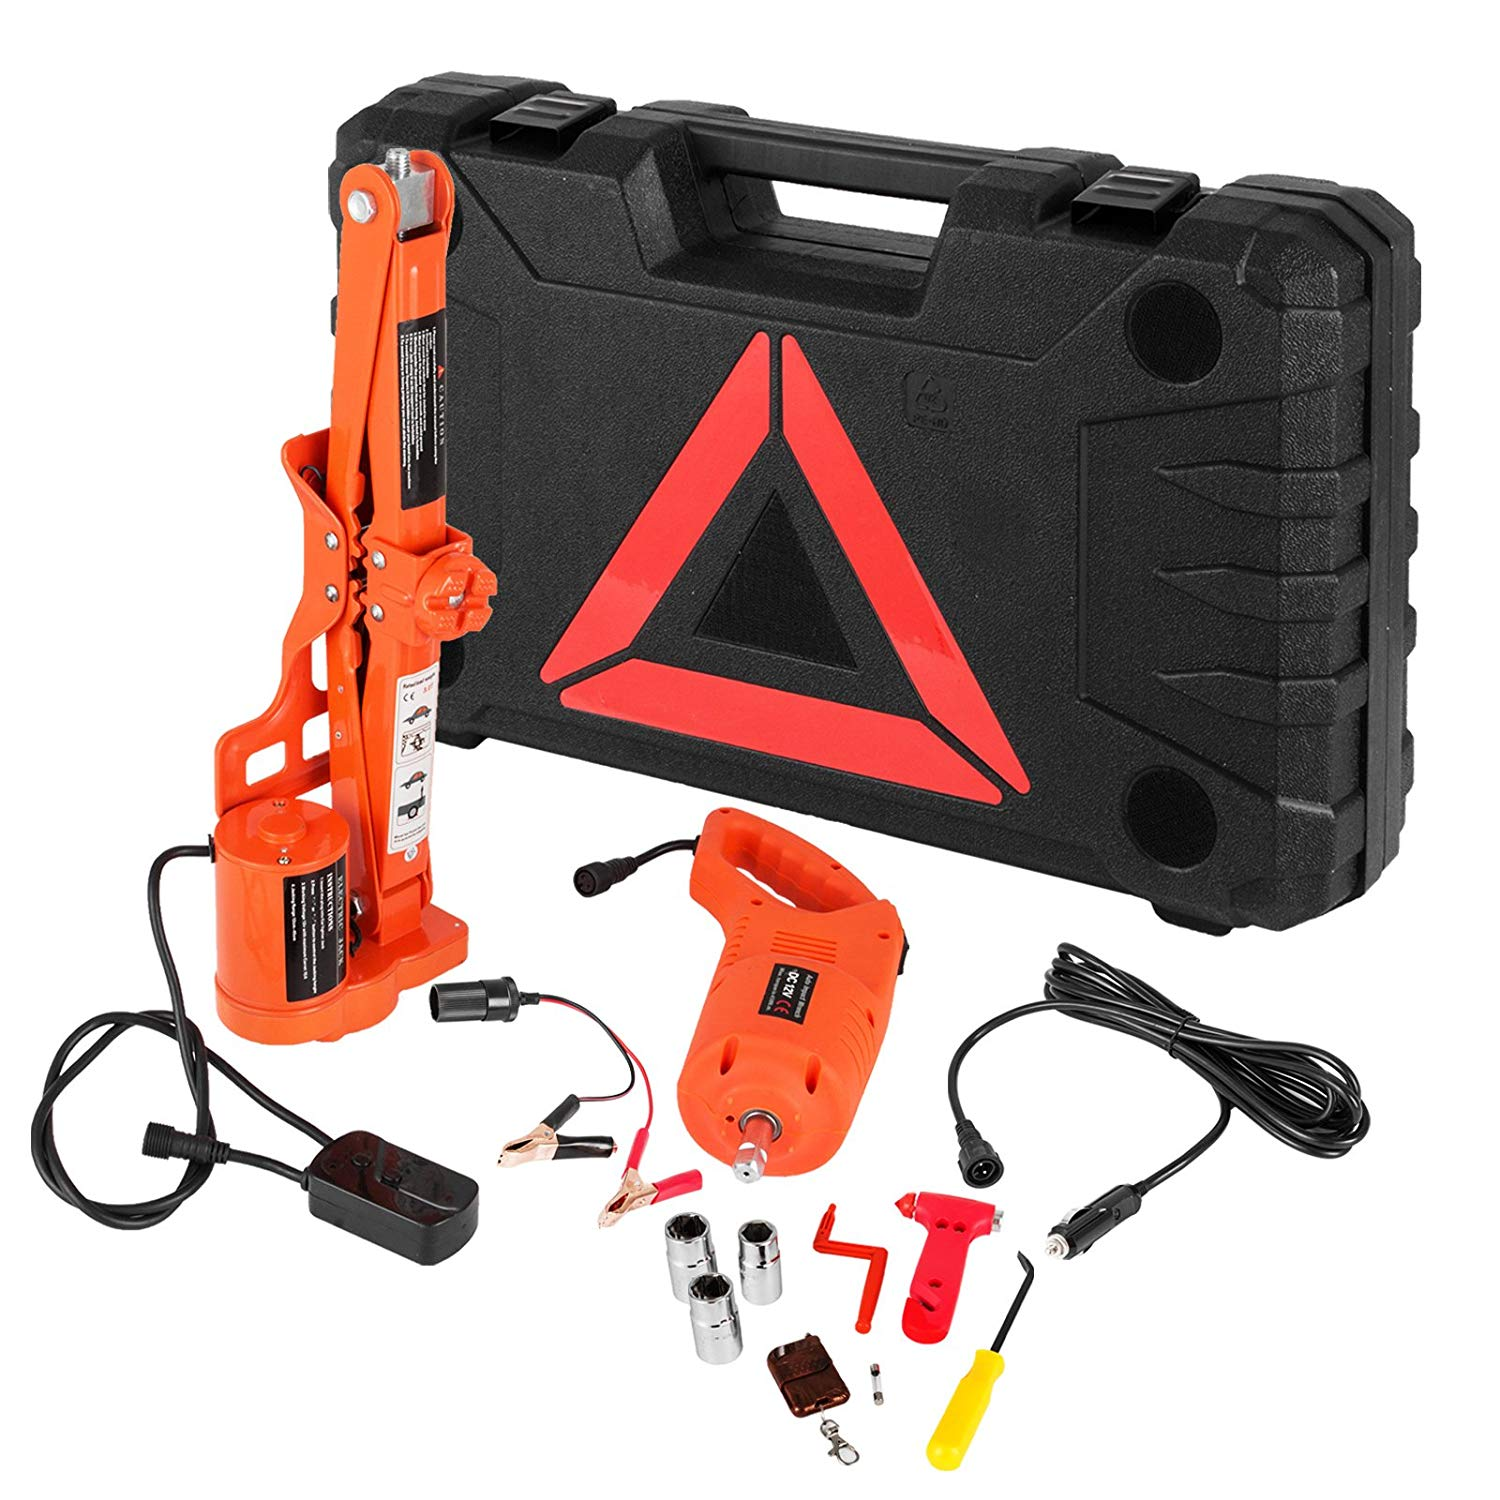 Bestauto 3 Ton Electric Car Jack 12V Scissor Lift Jacks Electric 6600LBS Jack Lifting Car With Impact Wrench